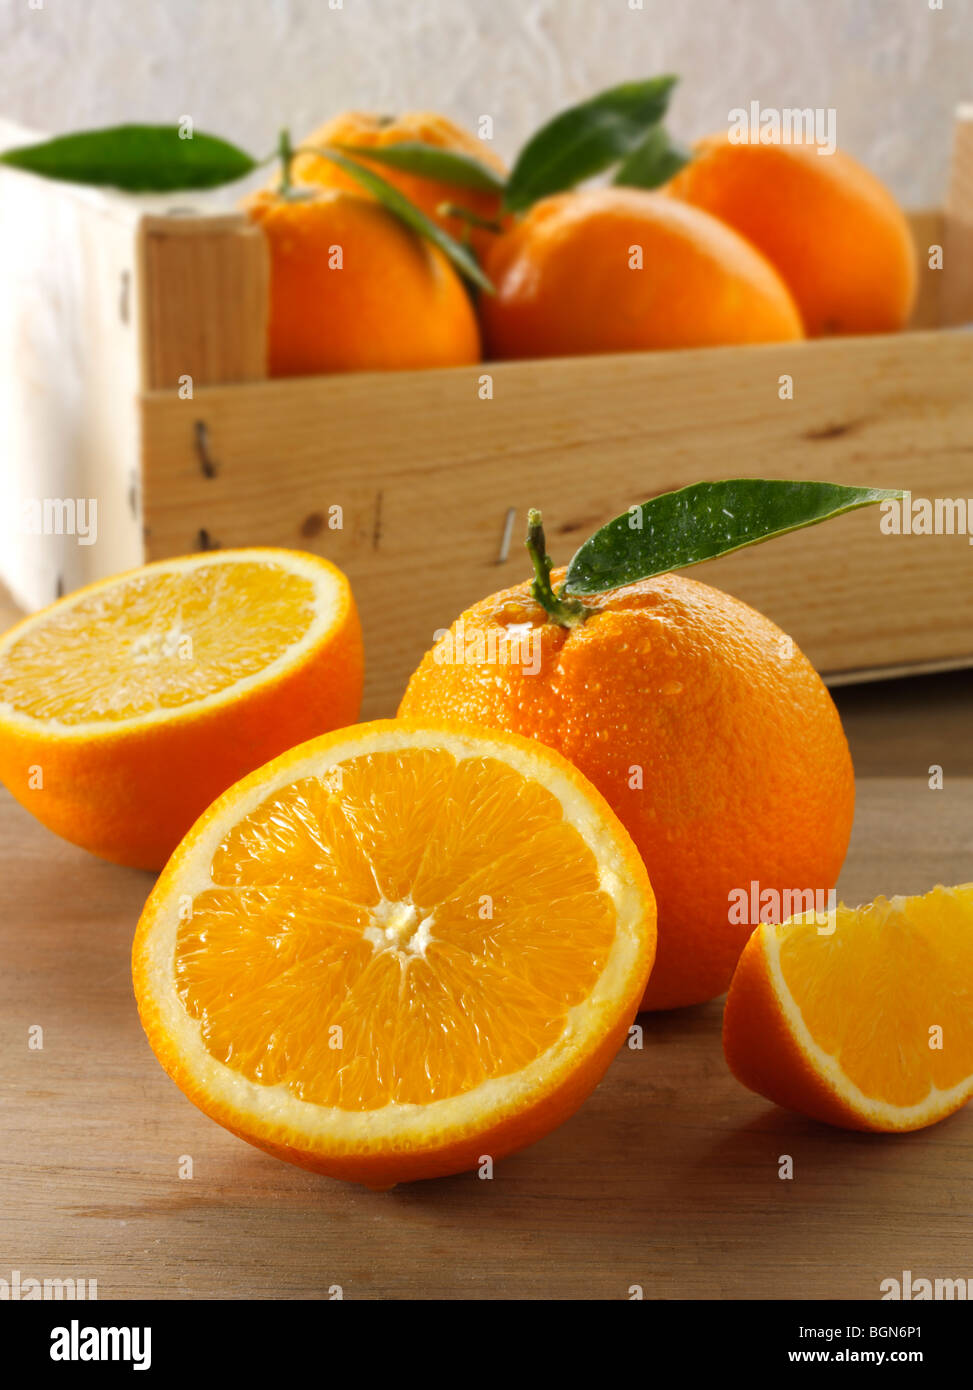 Fresh oranges whole and cut halves with leaves in a box - Stock Image